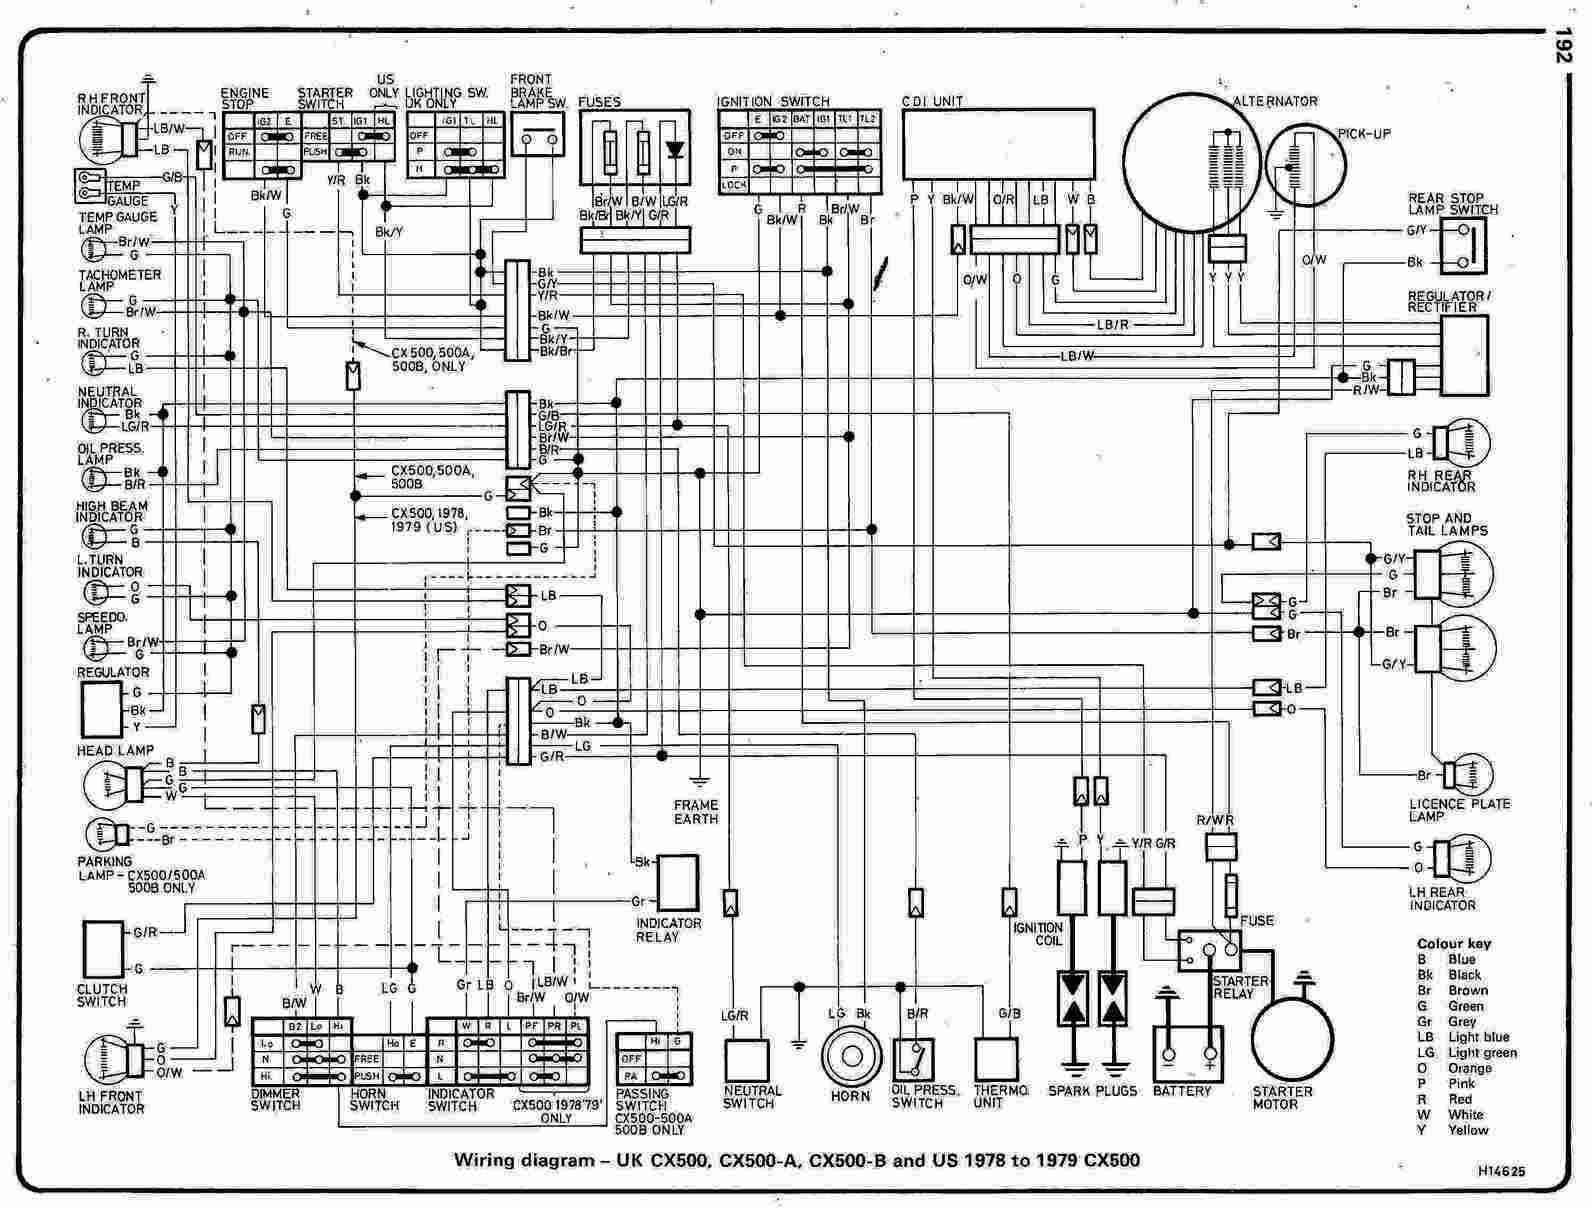 medium resolution of honda cx500 motorcycle 1978 1979 complete wiring diagram